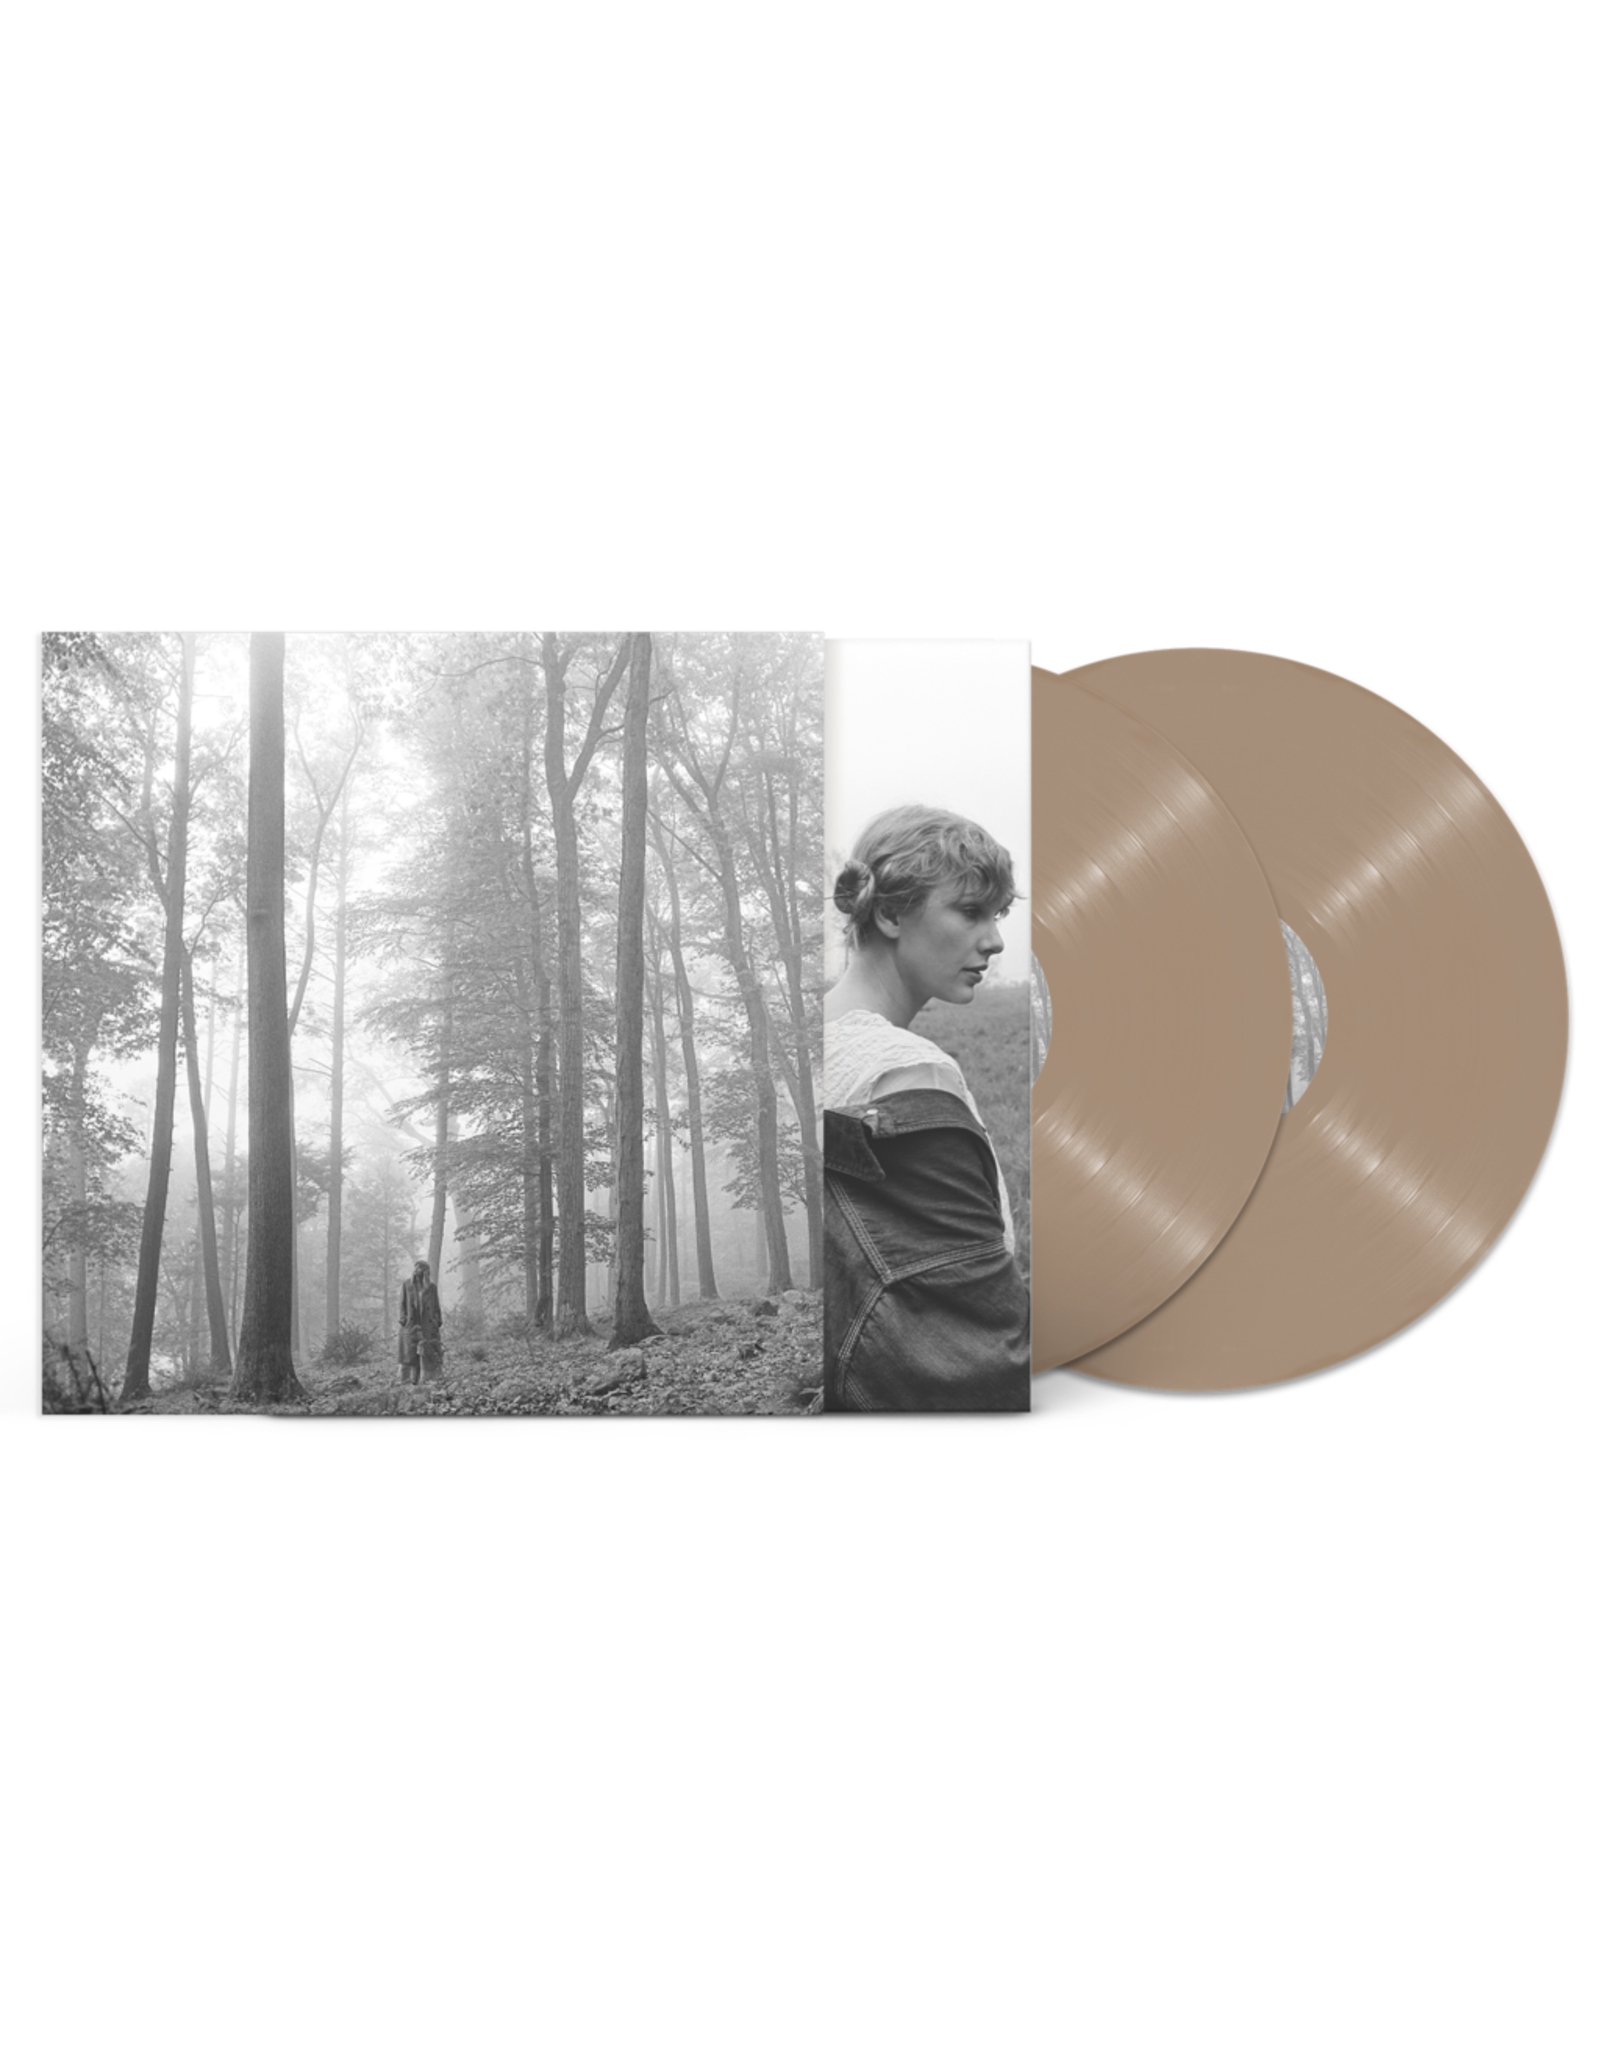 Taylor Swift - Folklore: In The Trees (Deluxe Edition)